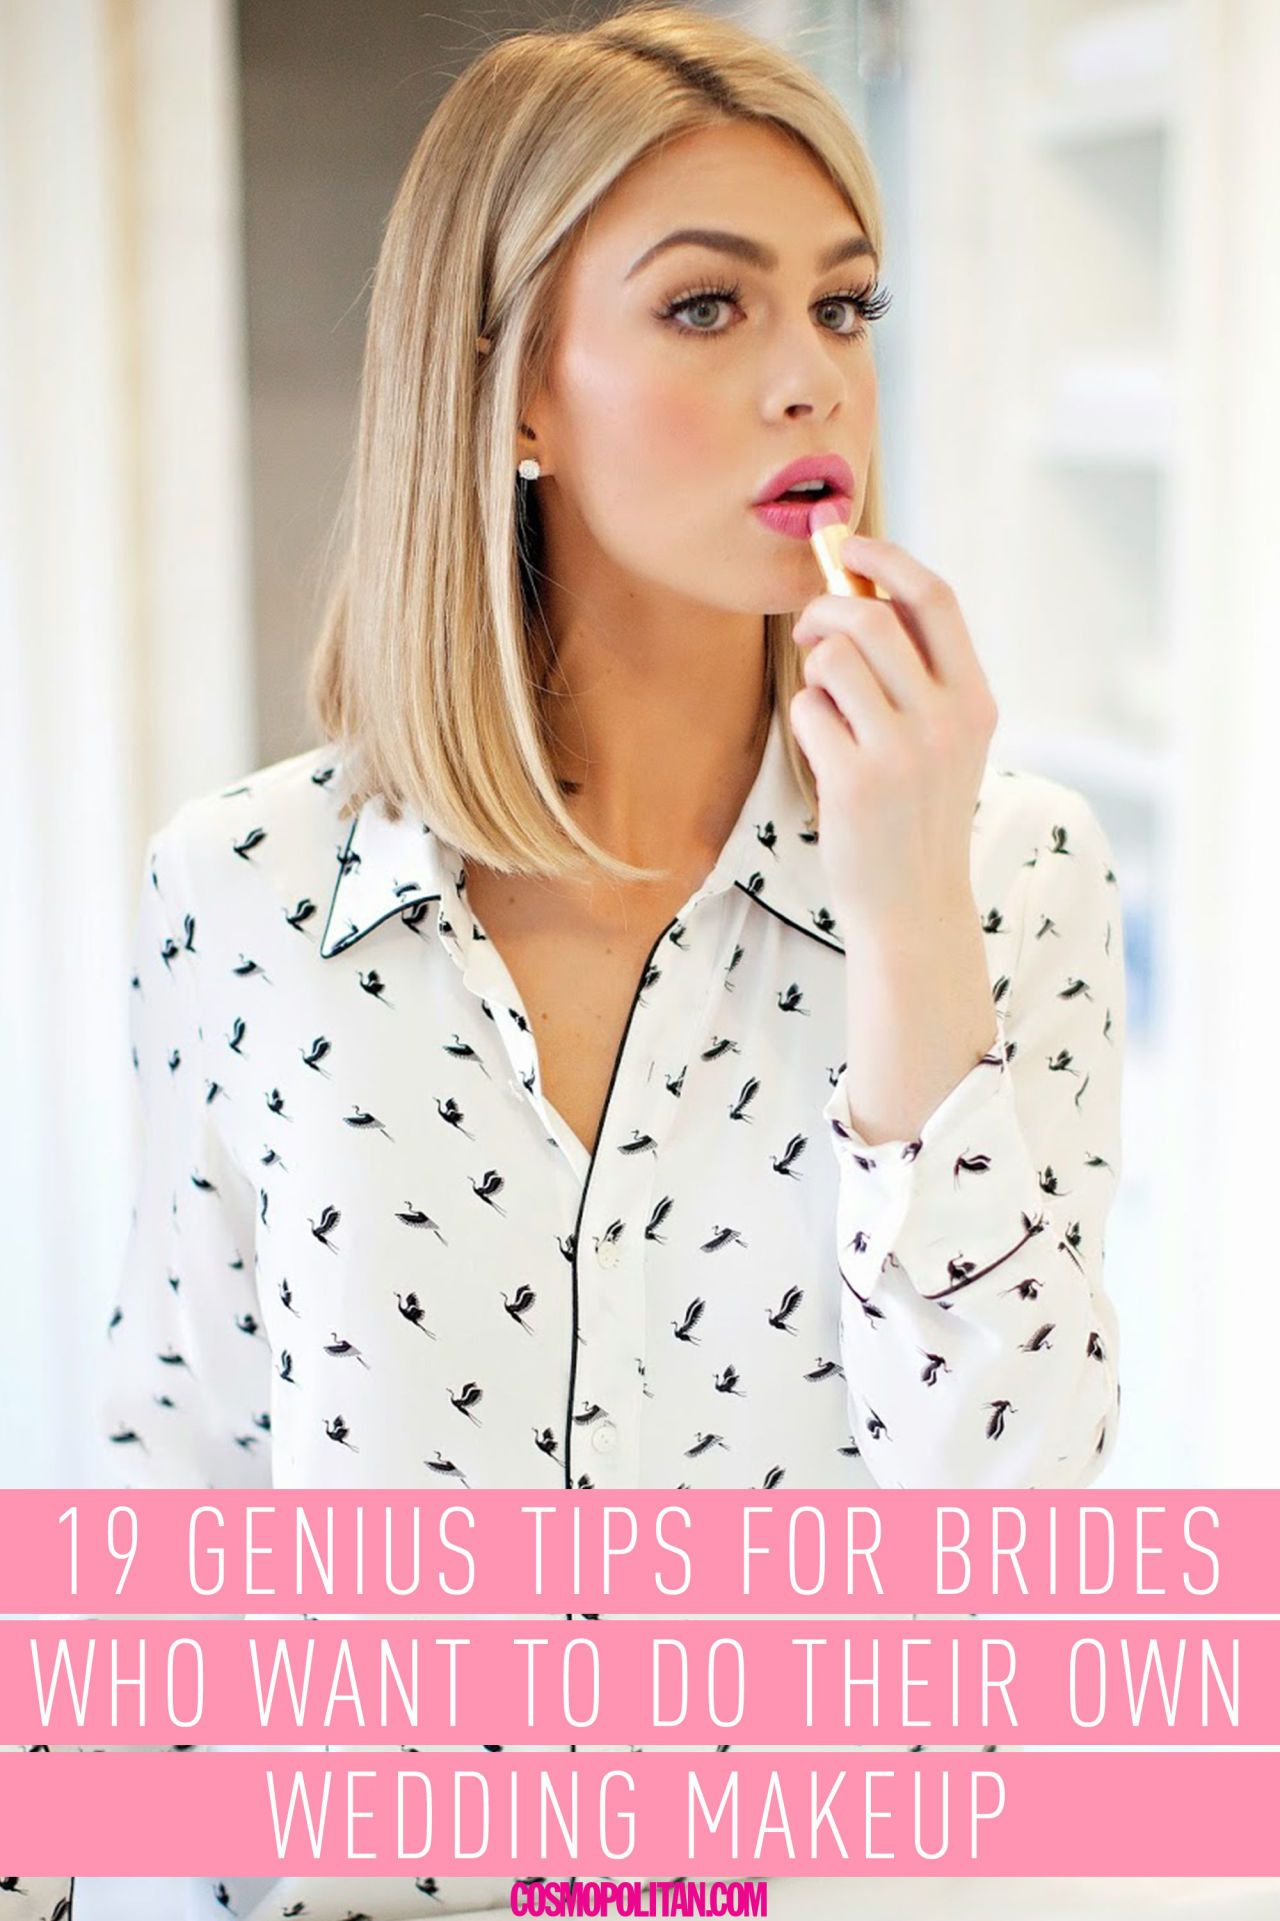 8 Genius Tips for Brides Who Want to Do Their Own Wedding Makeup